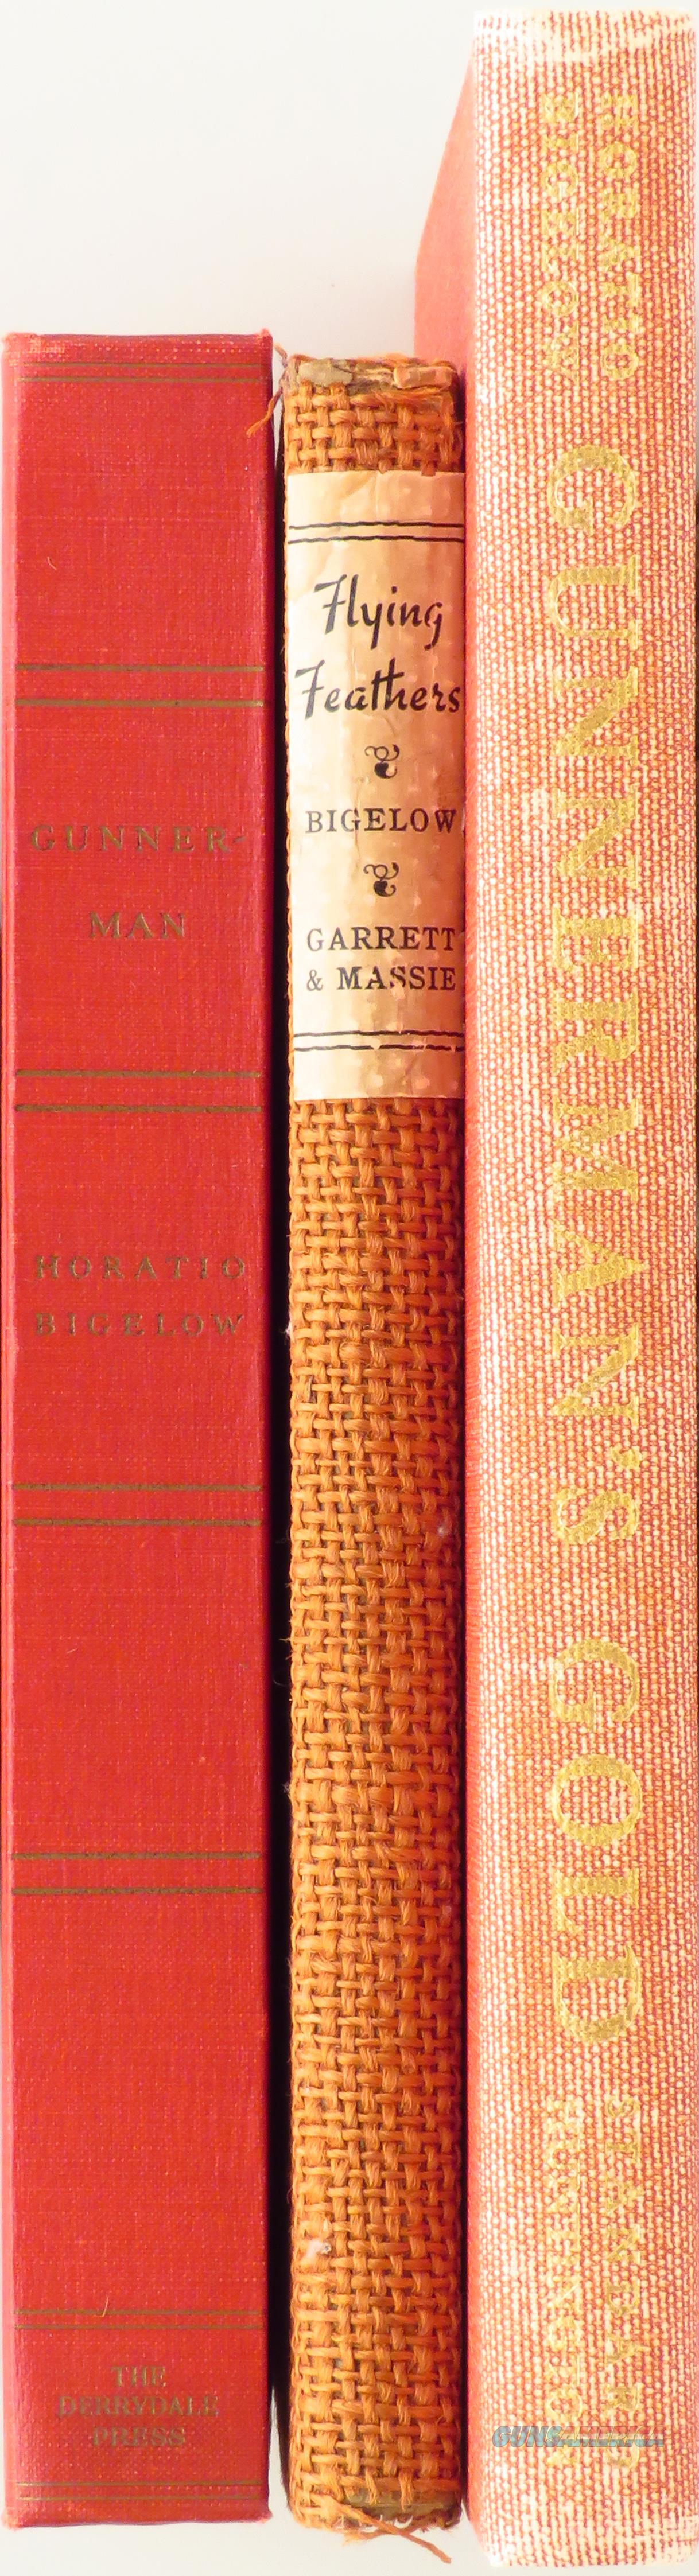 Trio by Horatio Bigelow, Gunnerman, Feathers, Derrydale, wing shooting   Non-Guns > Books & Magazines